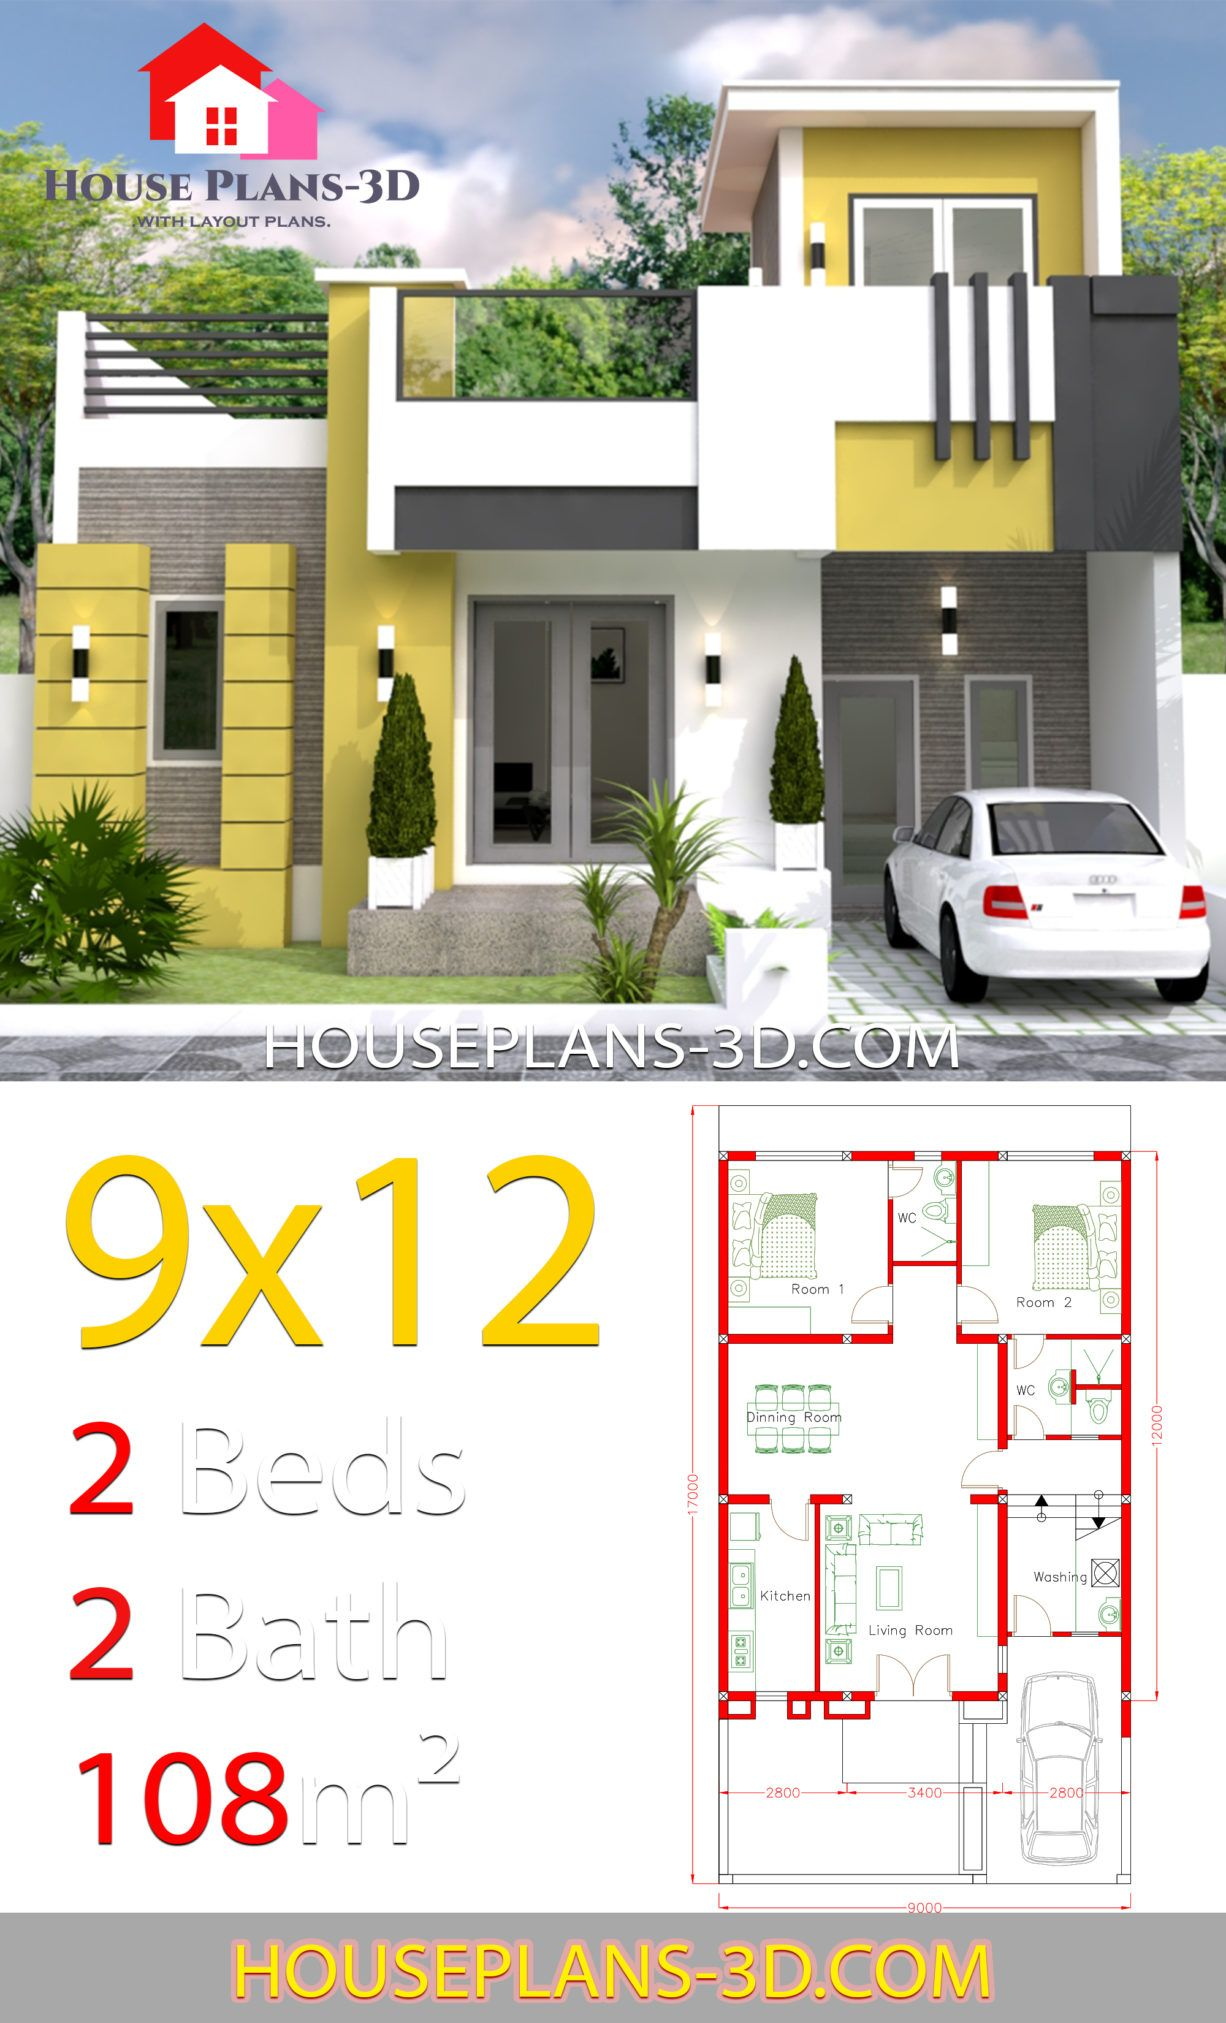 House Design 9x12 With 2 Bedrooms Full Plans House Plans 3d House Plans 2bhk House Plan Small House Design Plans